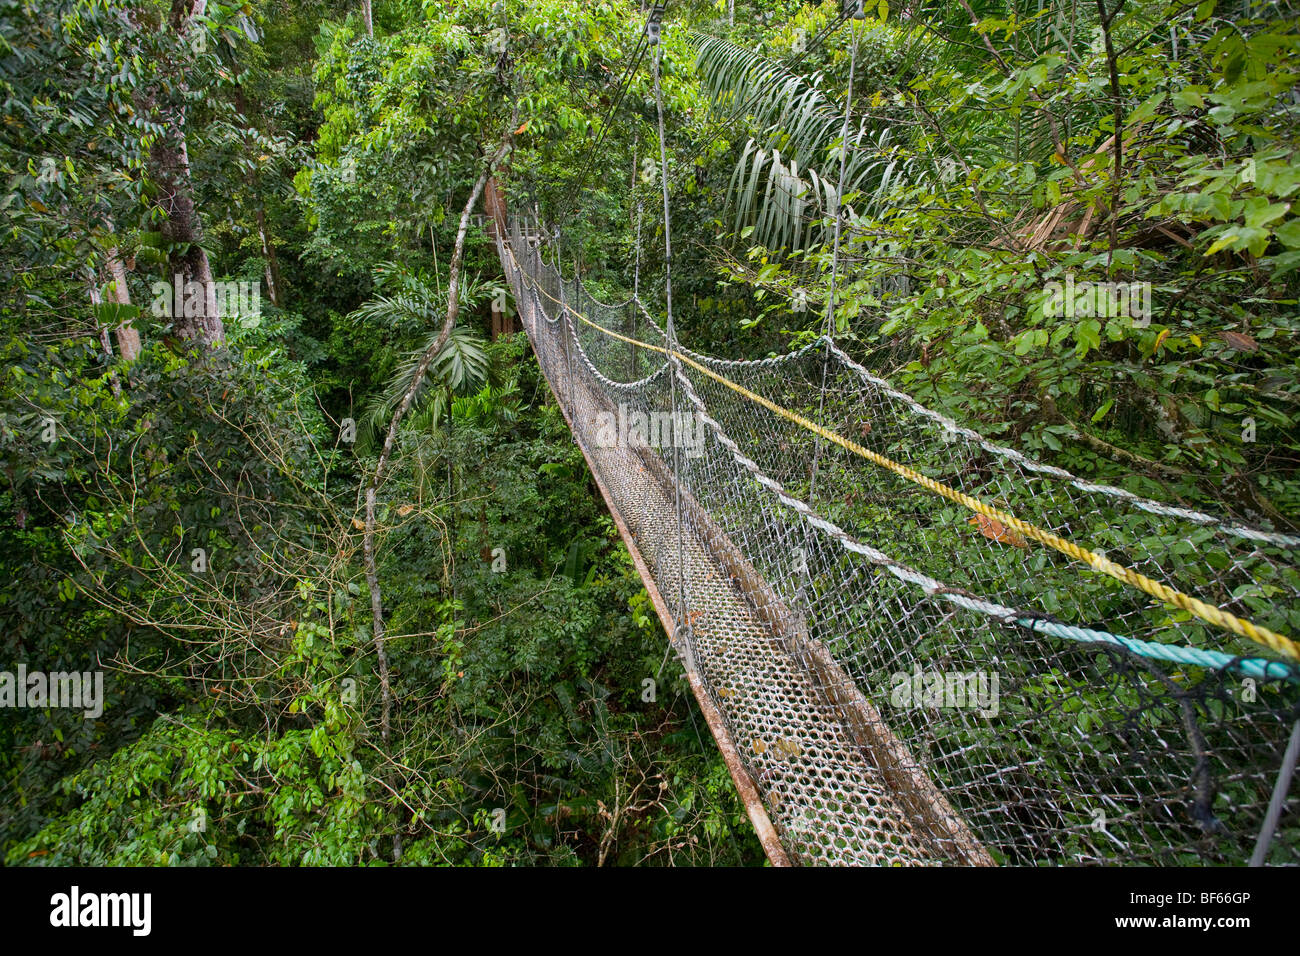 CANOPY WALKWAY through primary rainforest Iwokrama forest reserve Guyana. & CANOPY WALKWAY through primary rainforest Iwokrama forest reserve ...